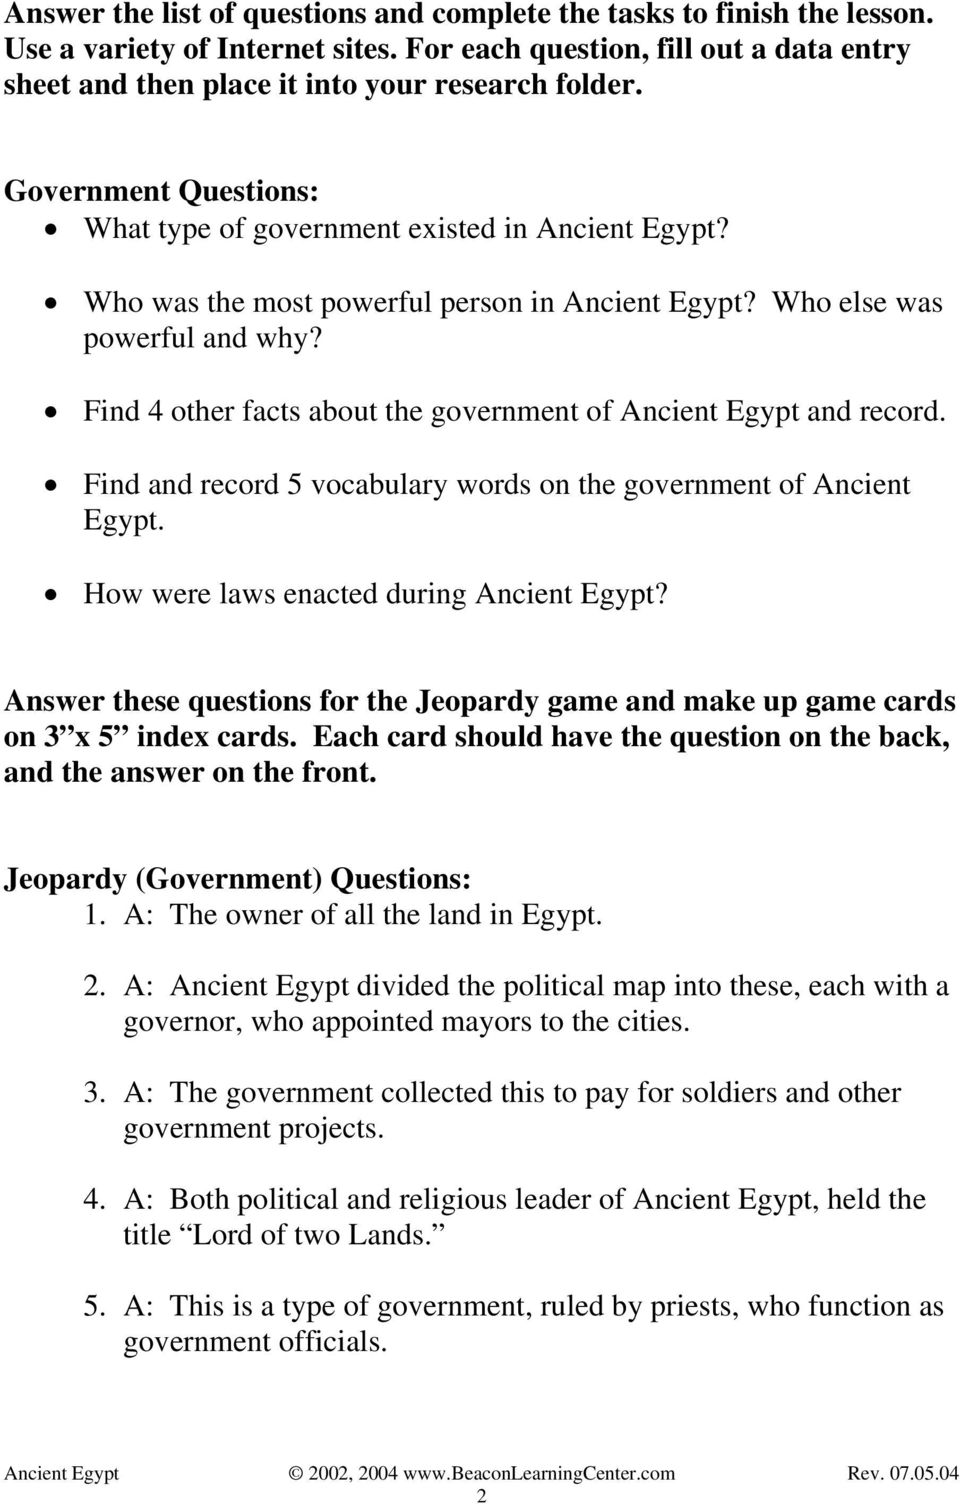 Find 4 other facts about the government of Ancient Egypt and record. Find and record 5 vocabulary words on the government of Ancient Egypt. How were laws enacted during Ancient Egypt?